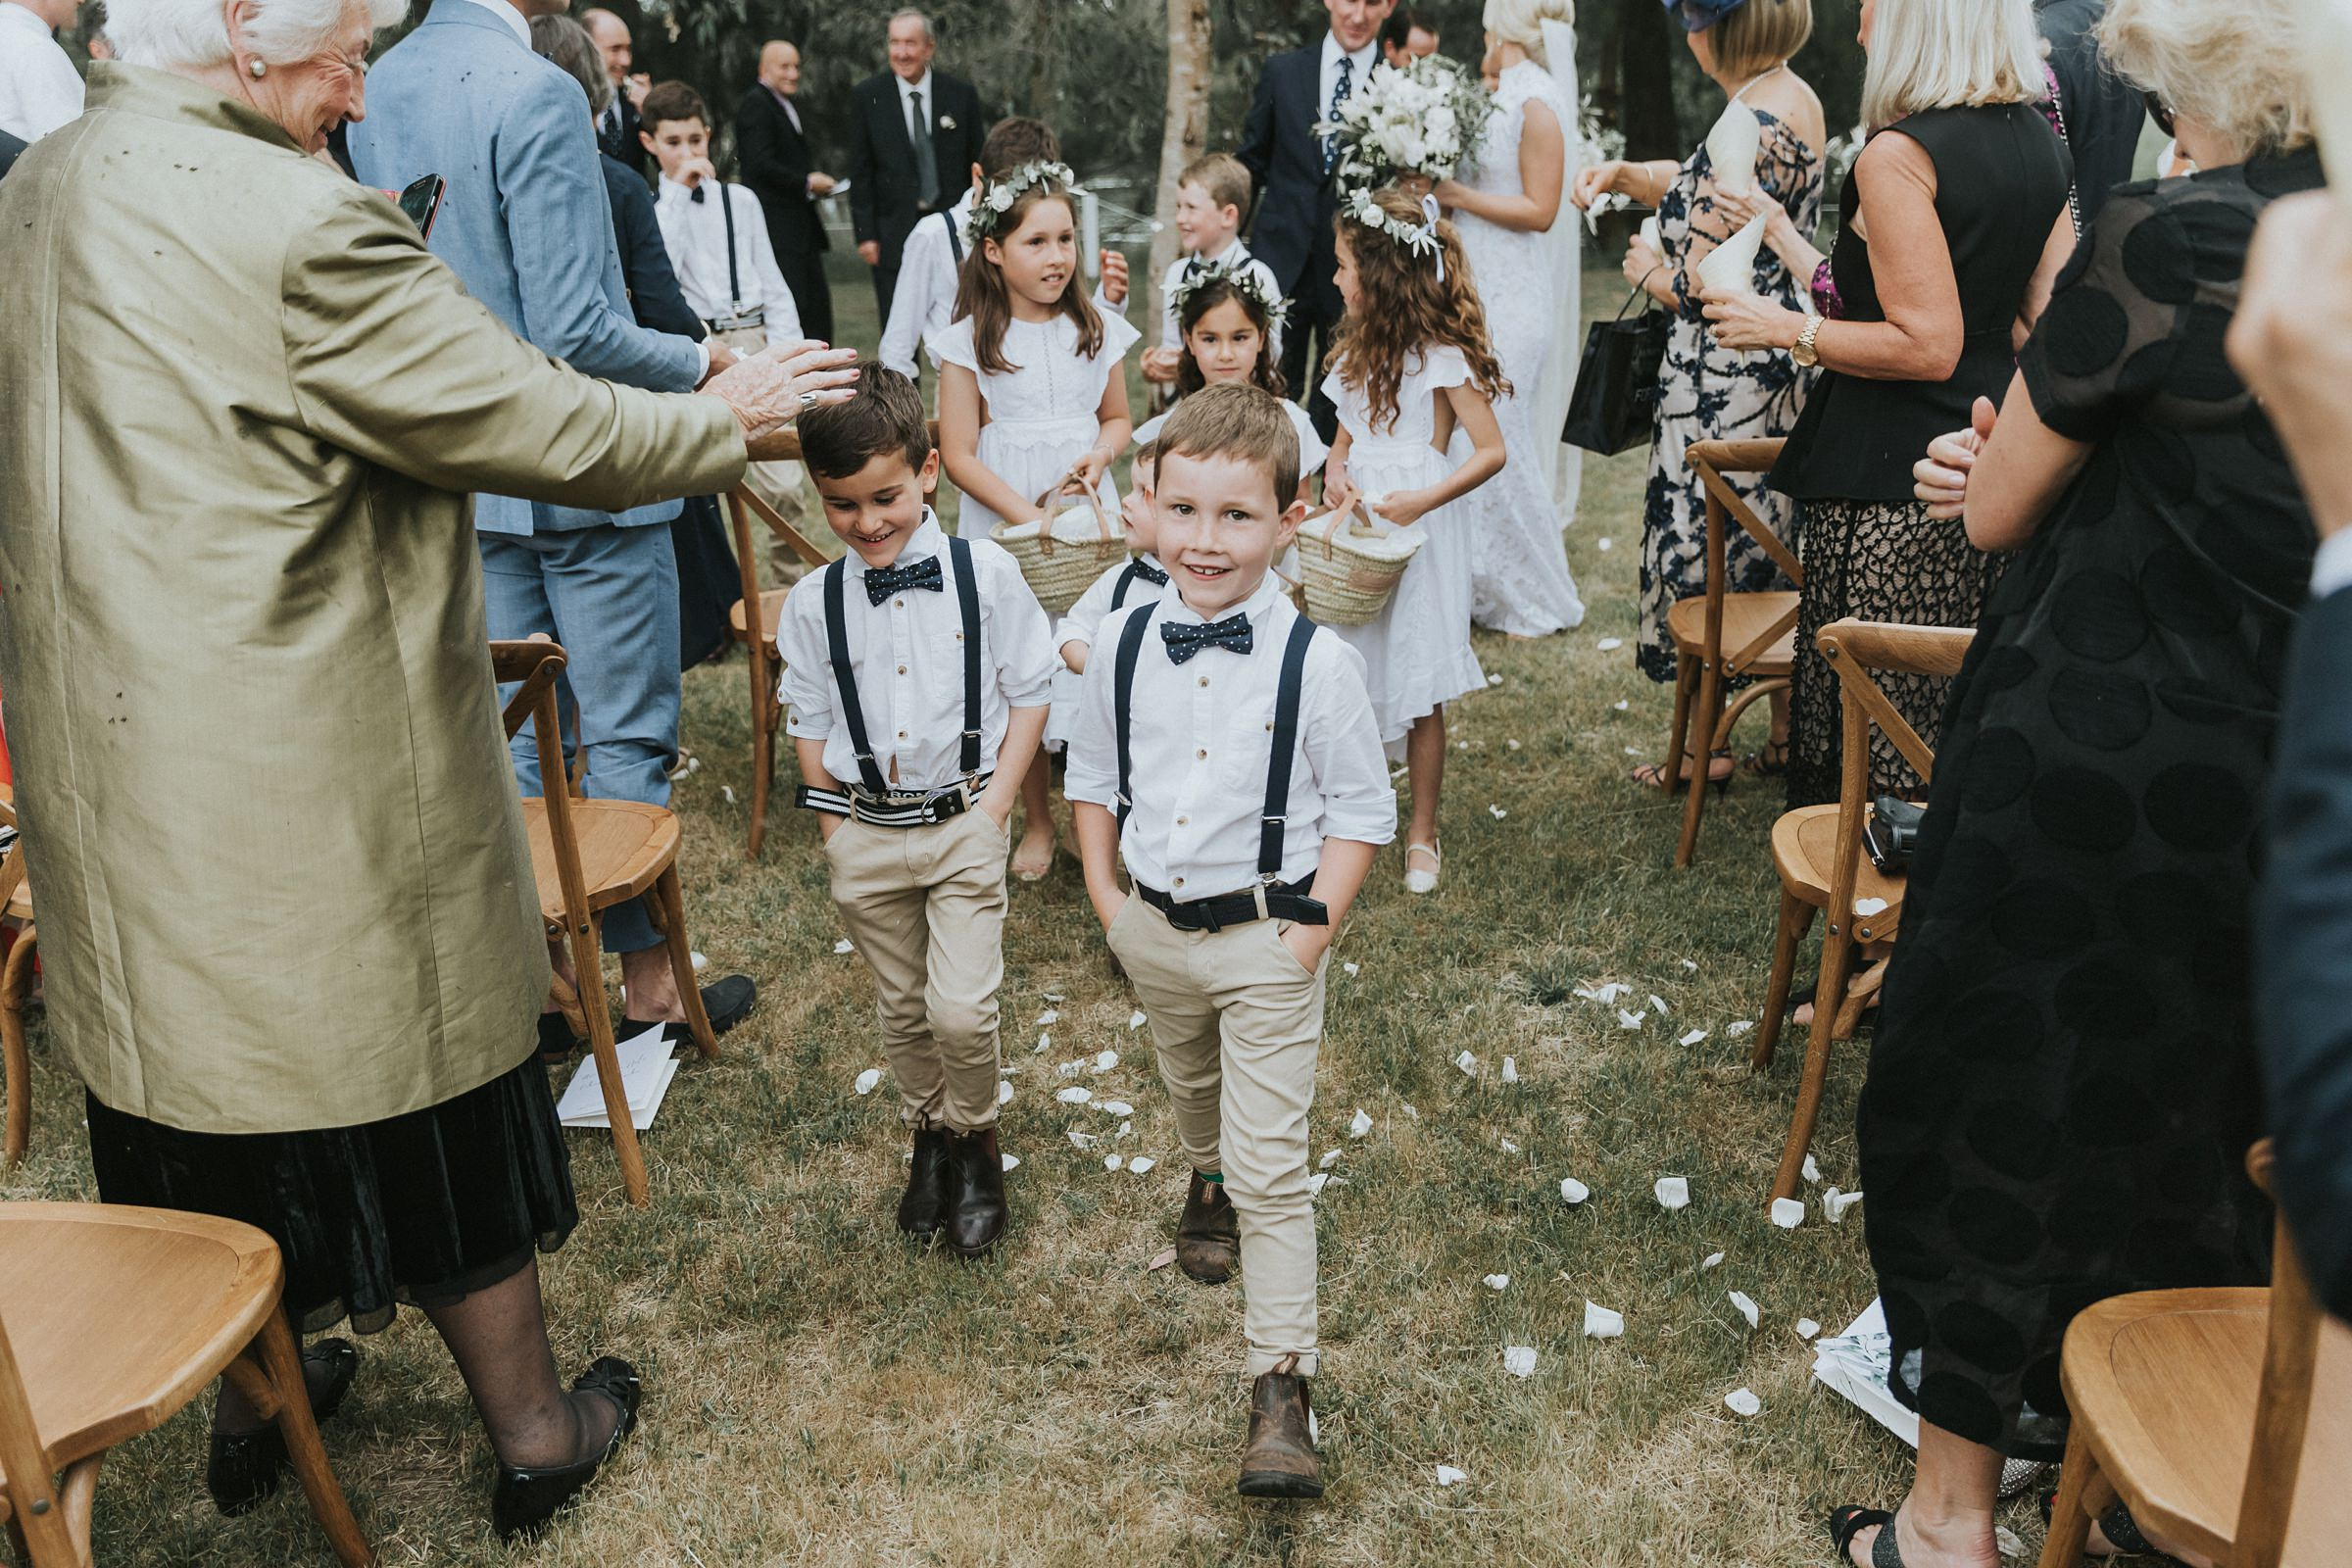 walking down the aisle with kids by your side at country wedding